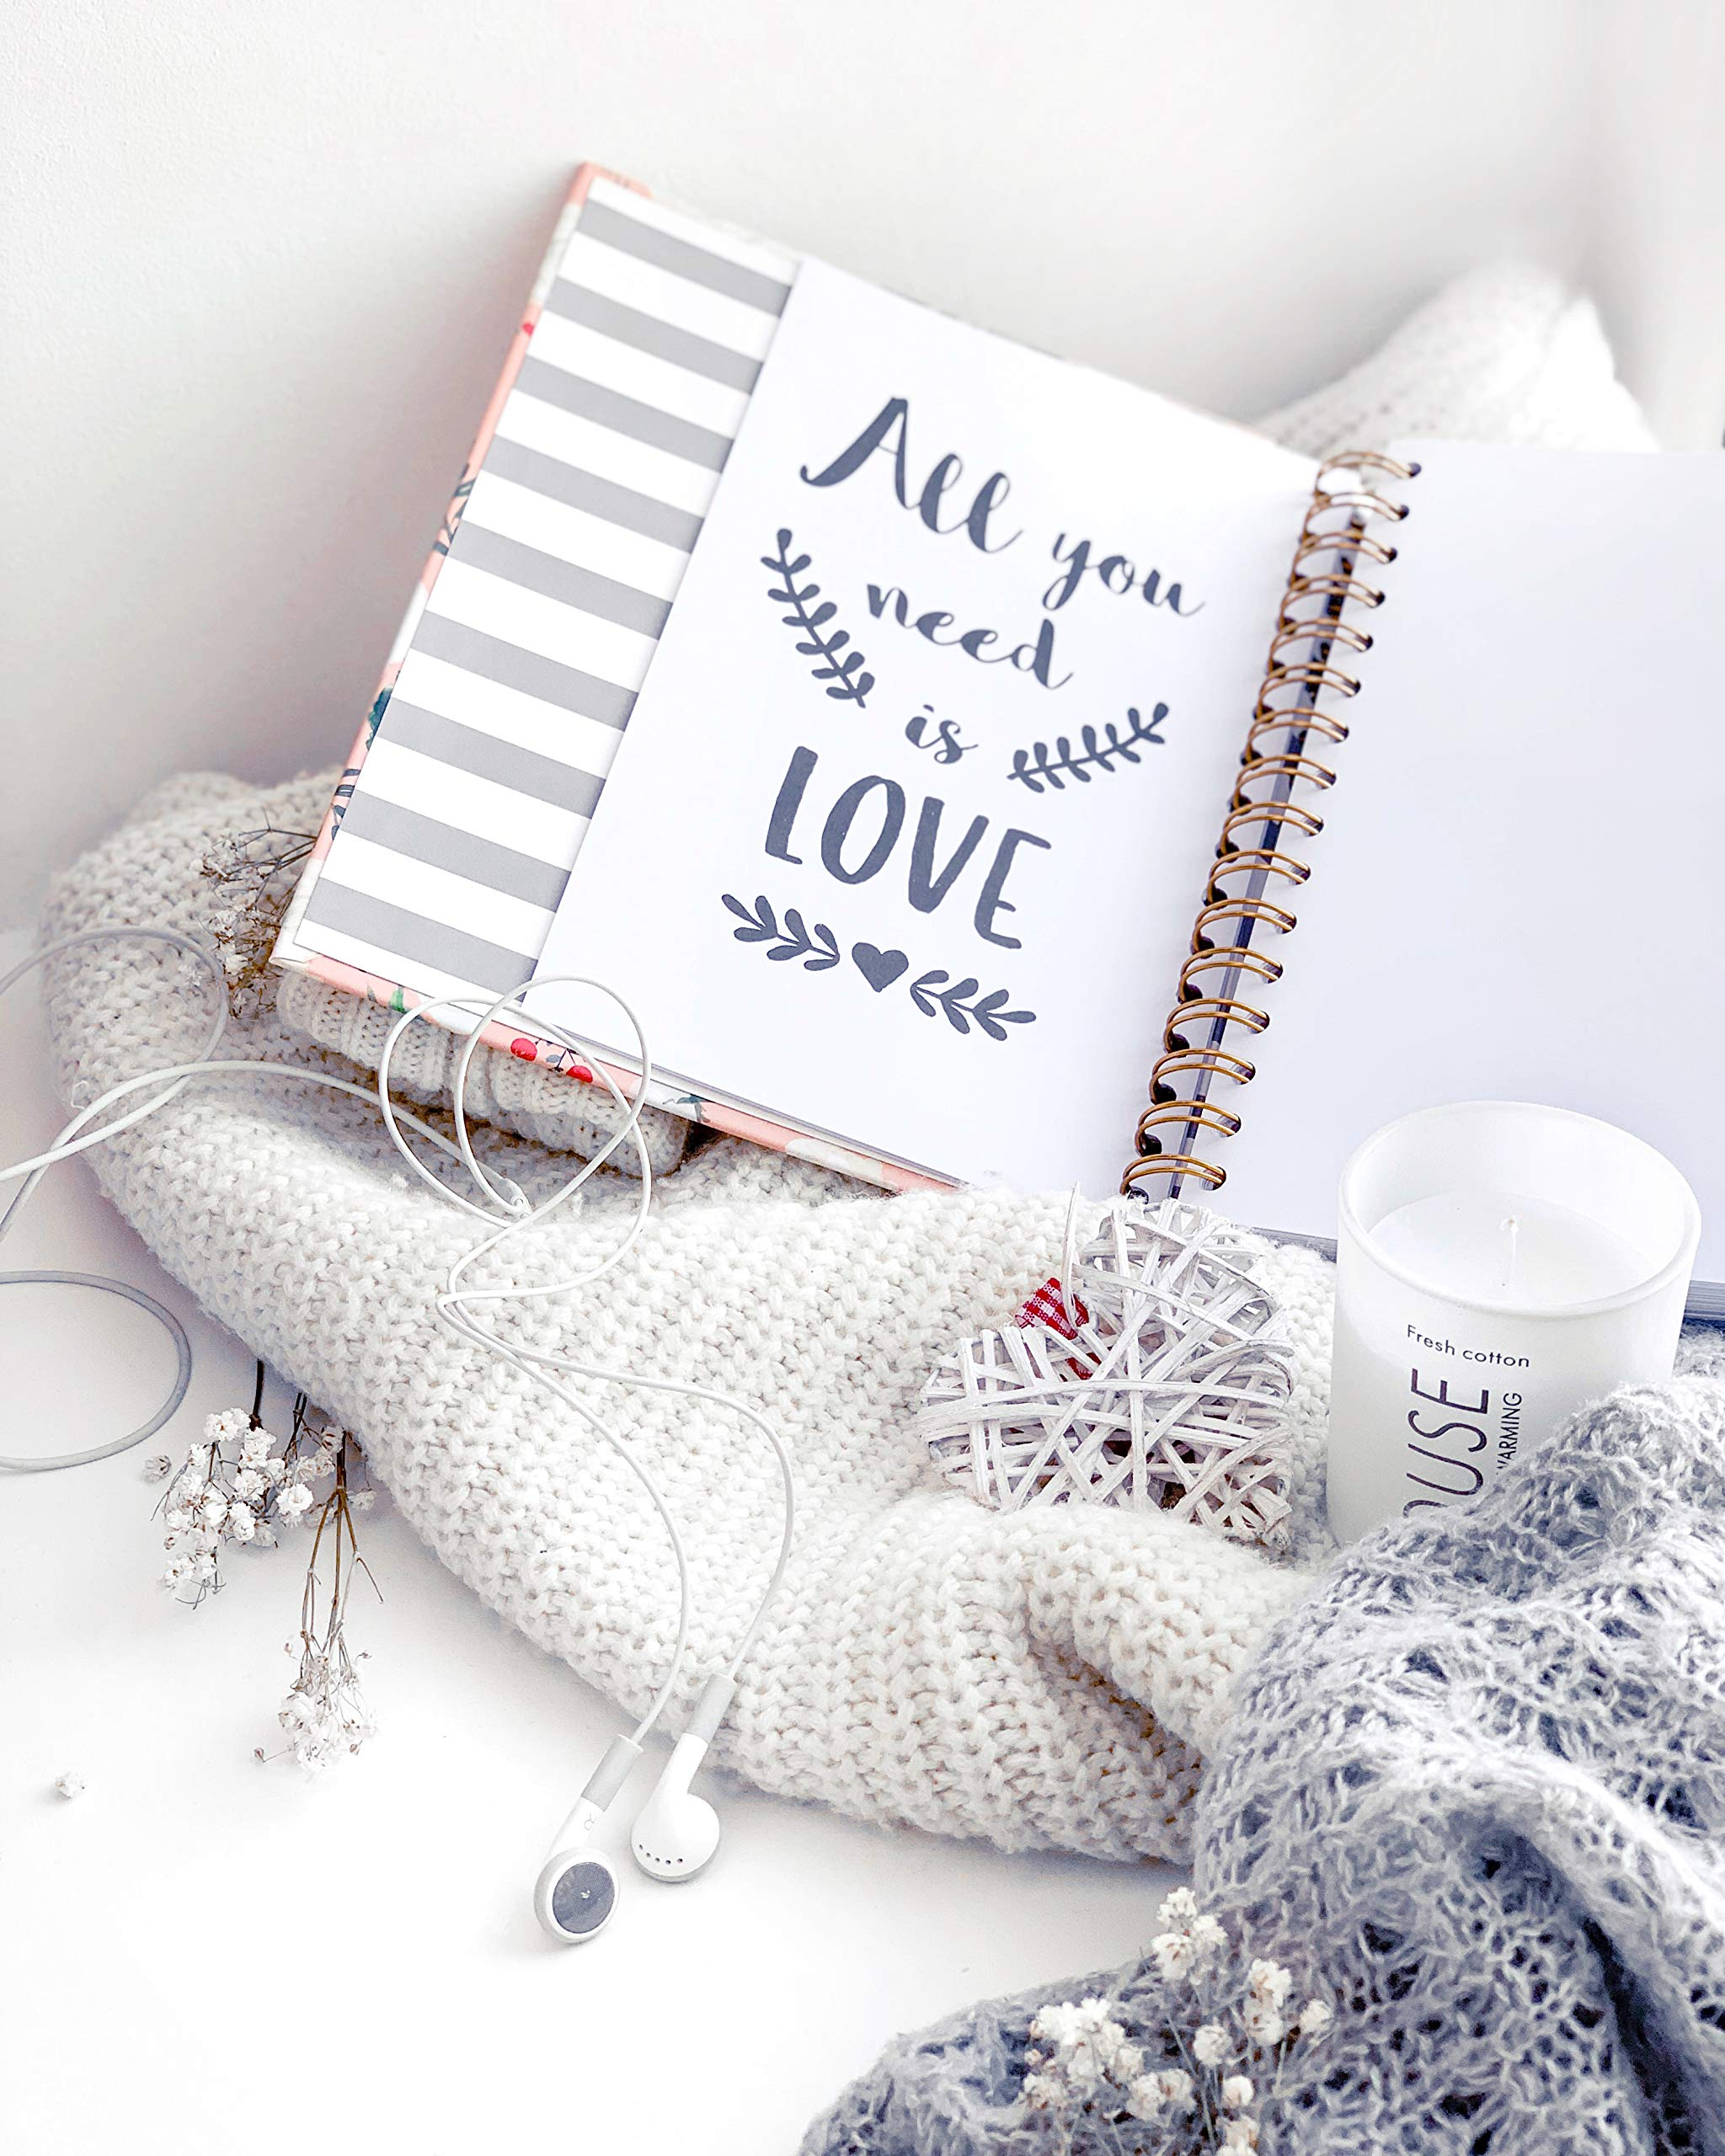 The Dream Wedding Planner | Luxury Wedding Organizer Book with Beautiful Souvenir Gift Box | Ideal Engagement Present for Couples | Perfect for Planning Your Dream Wedding by The Caledonia Design Co. (Image #6)